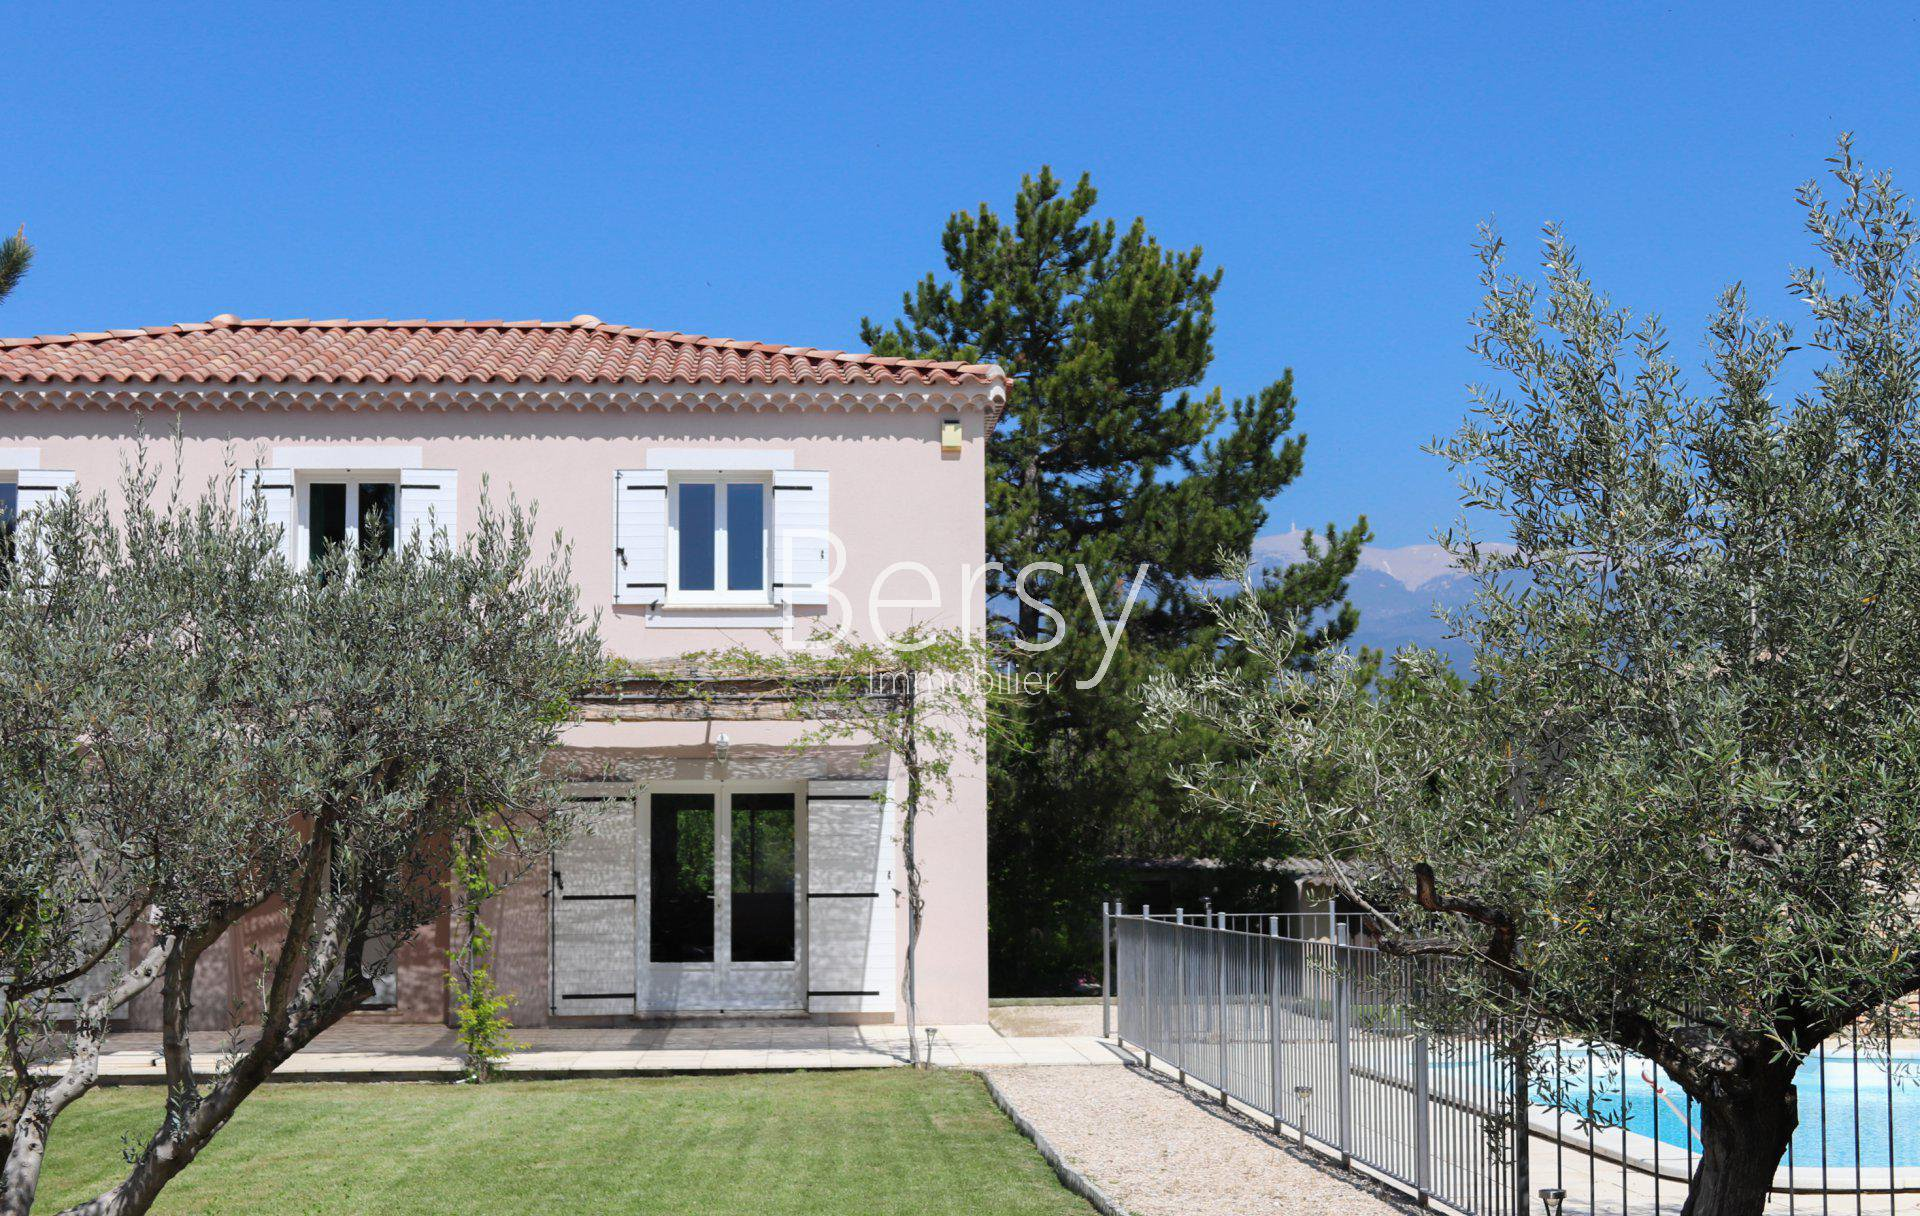 Contemporary - Center walk - Ventoux view - Recent House _ 160 m2 - 4/5 bedrooms - 1492 m2 of land - Swimming pool 5x10m